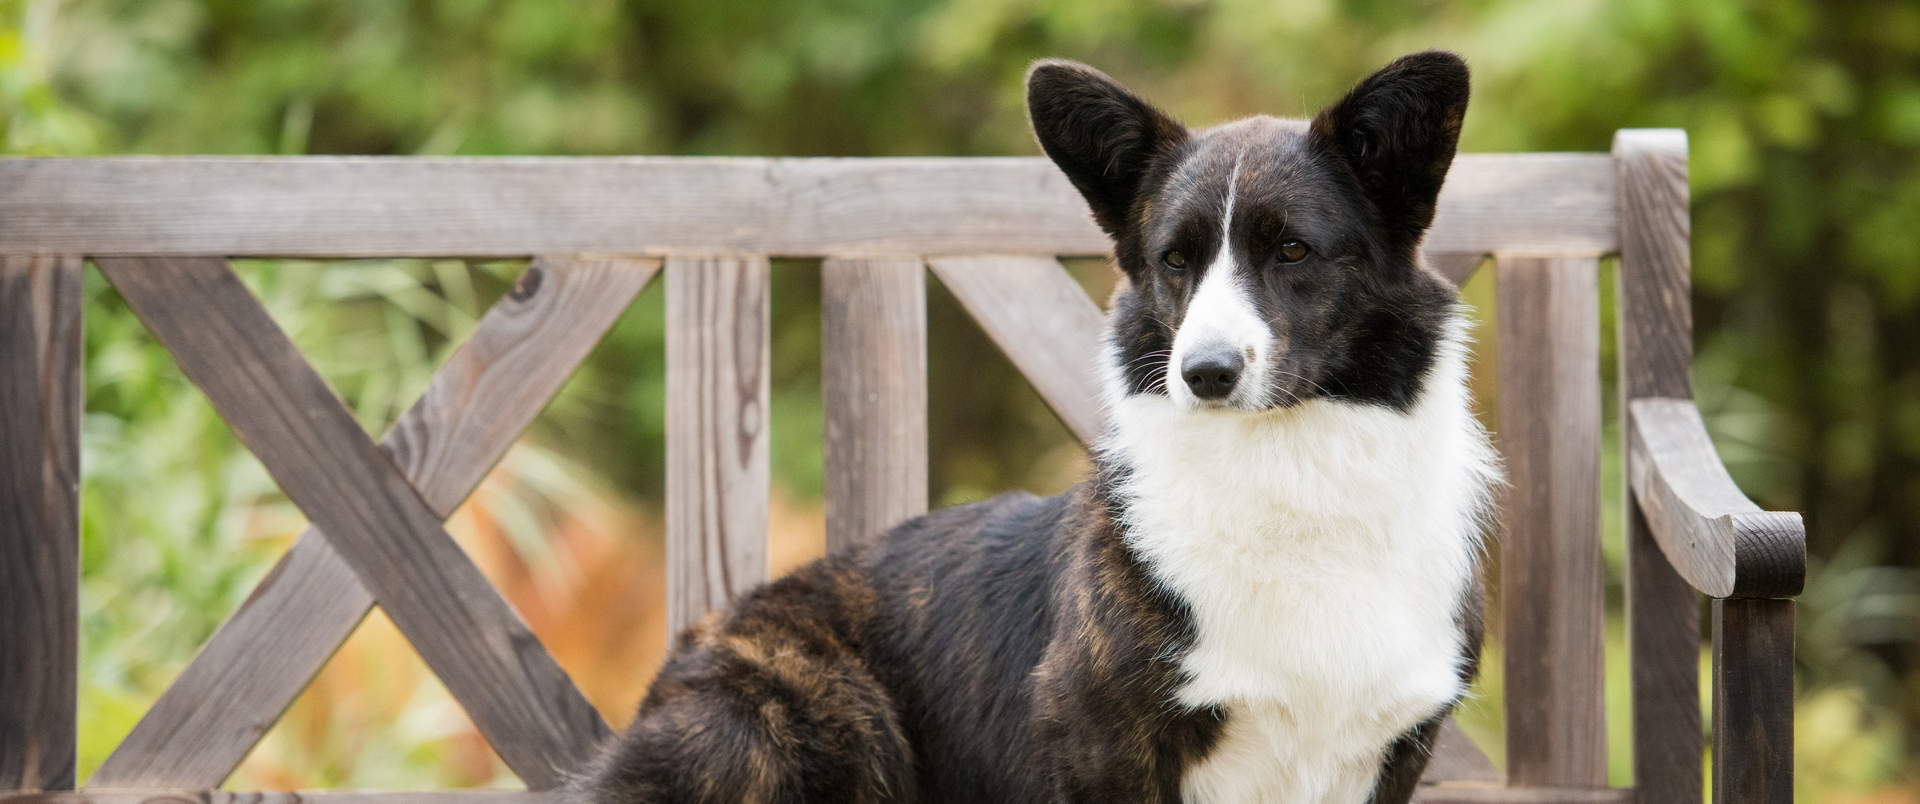 A Cardigan Welsh Corgi poses for a photo.